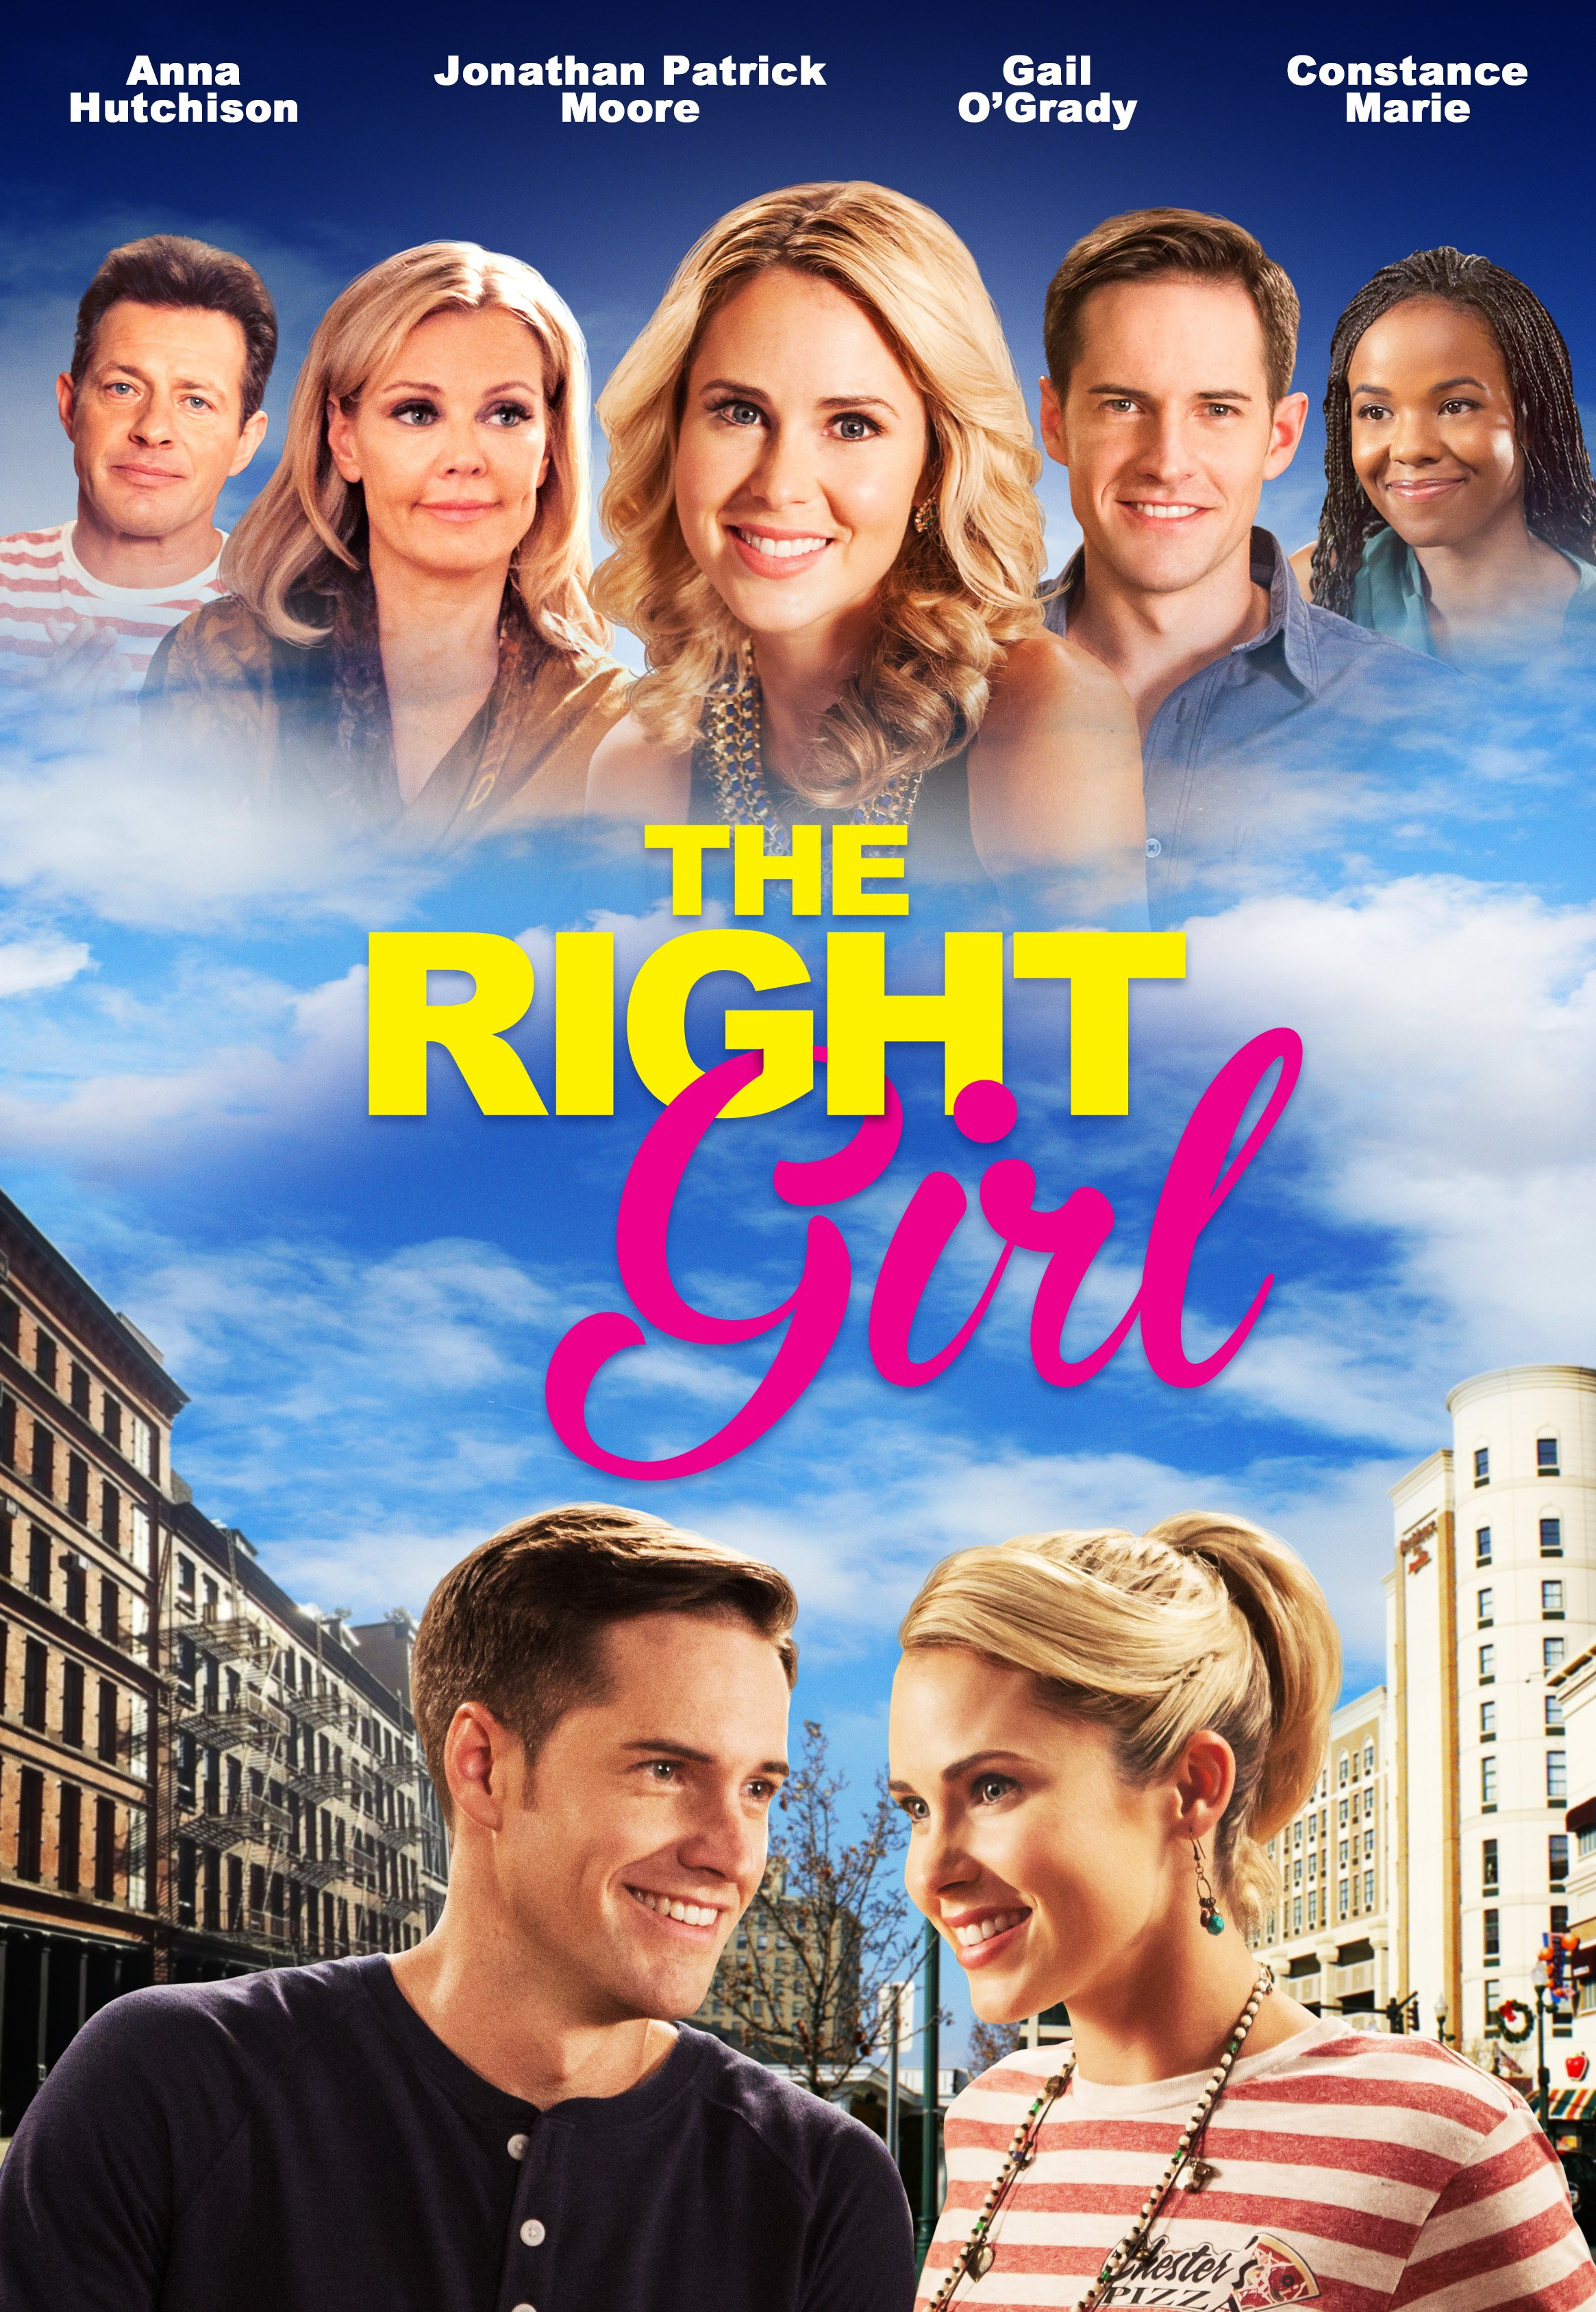 Anna Hutchison, Costas Mandylor, Gail O'Grady, and Jonathan Patrick Moore in The Right Girl (2015)